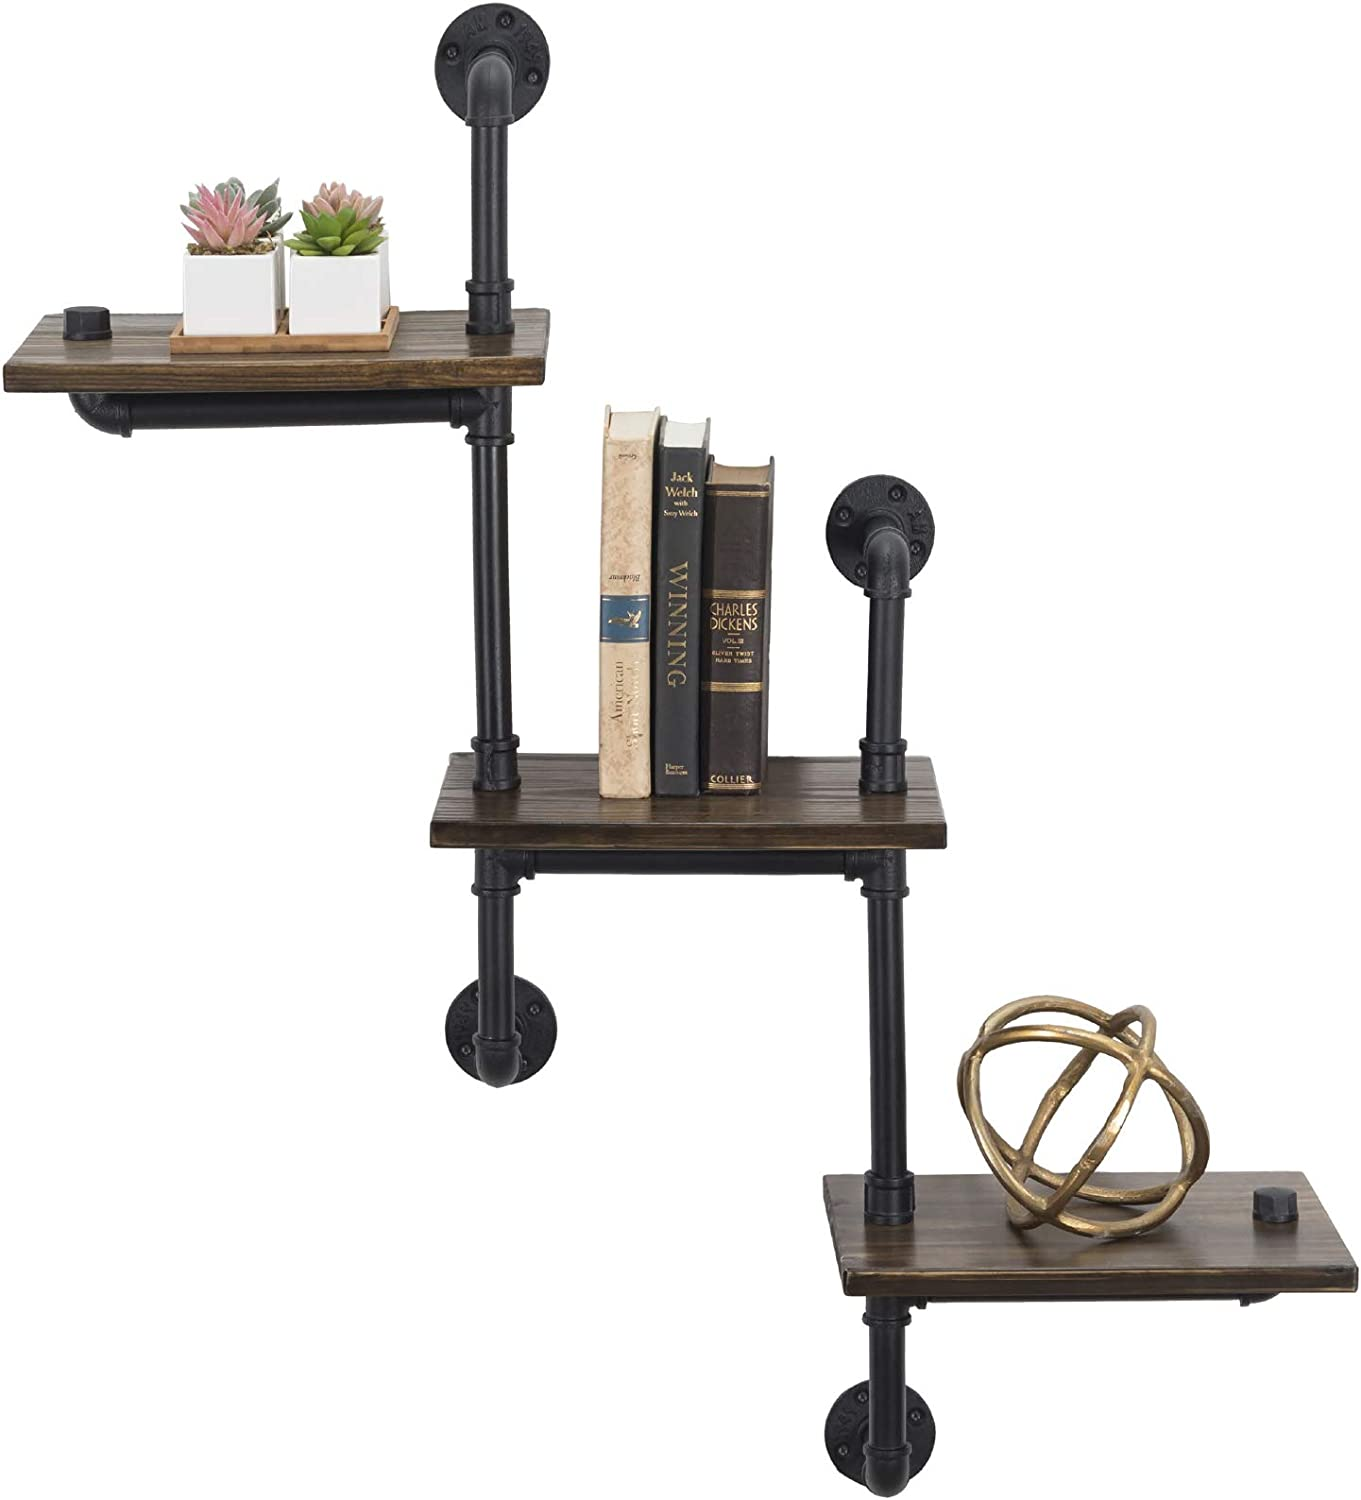 3-Tier Wooden Wall Ladder Floating Rustic Shelf 35 x40  With Iron Black Pipe Hardware For Bedroom, Kitchen, Office